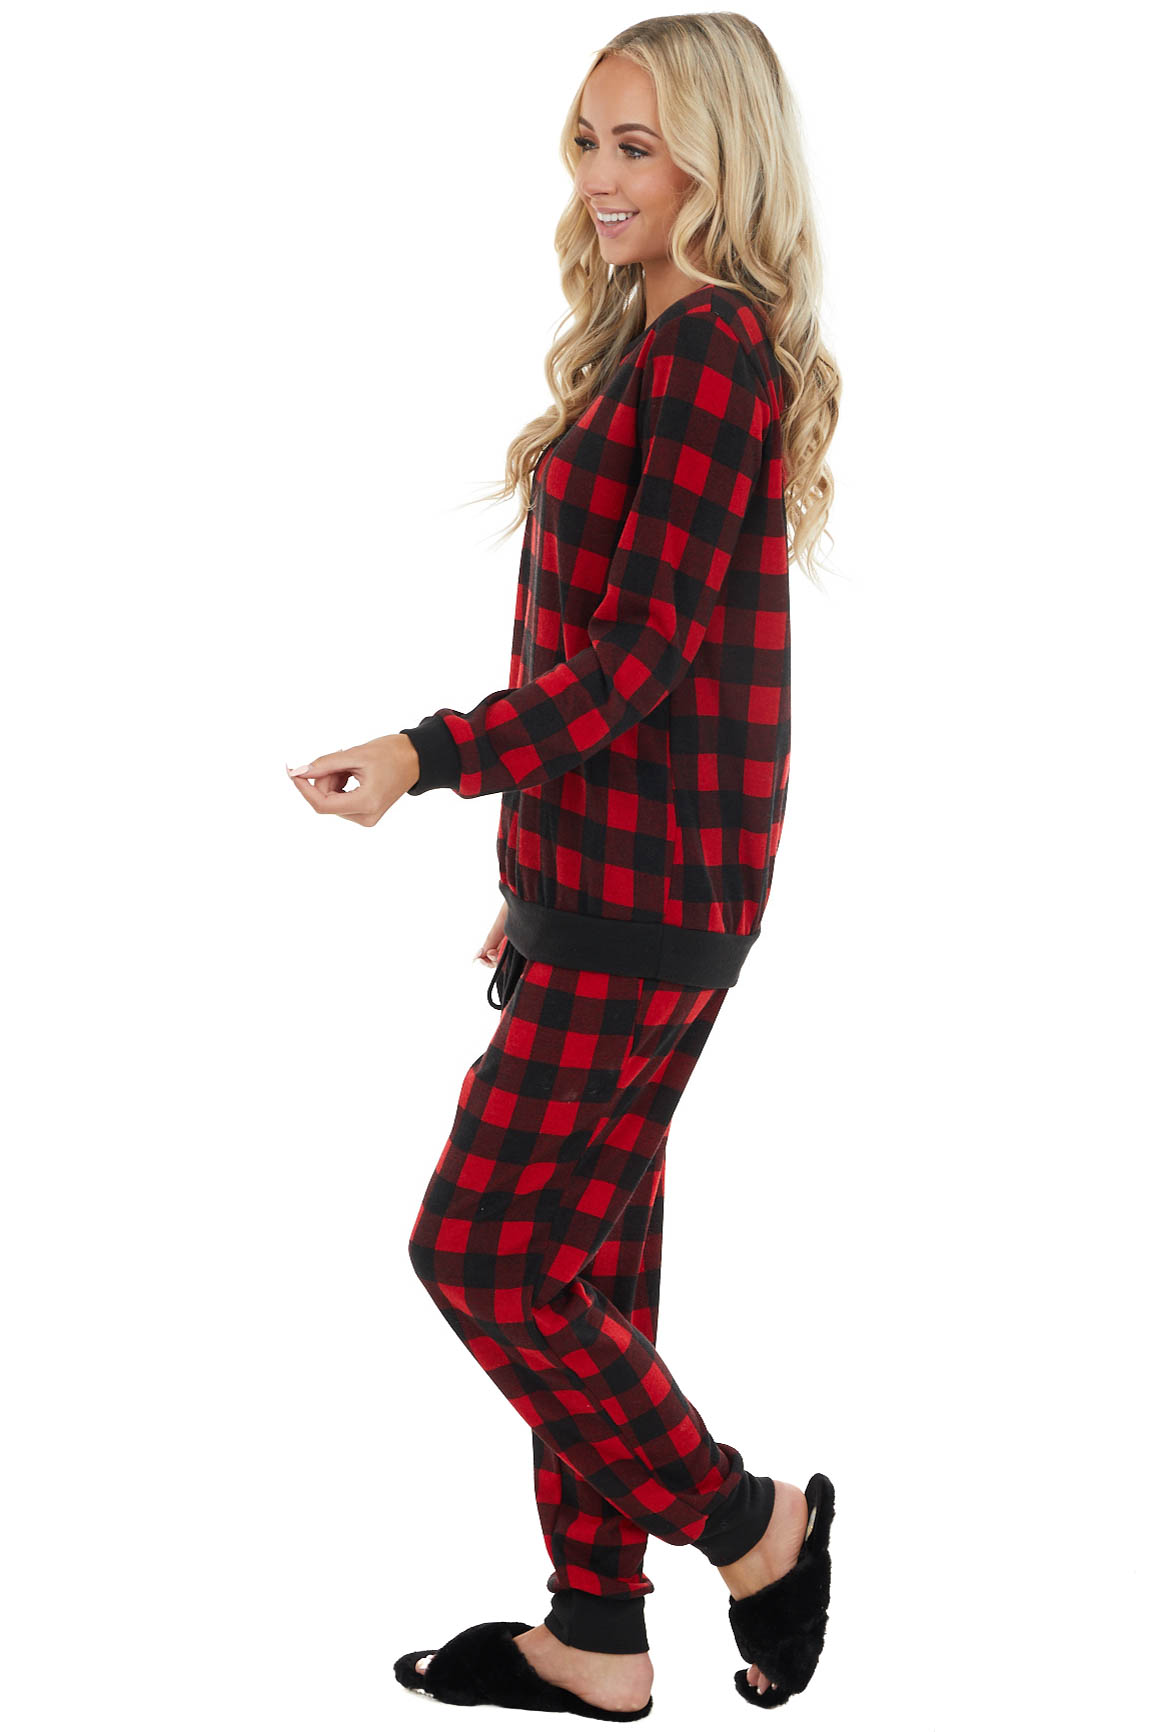 Cranberry Red and Black Buffalo Plaid Long Sleeve Knit Top